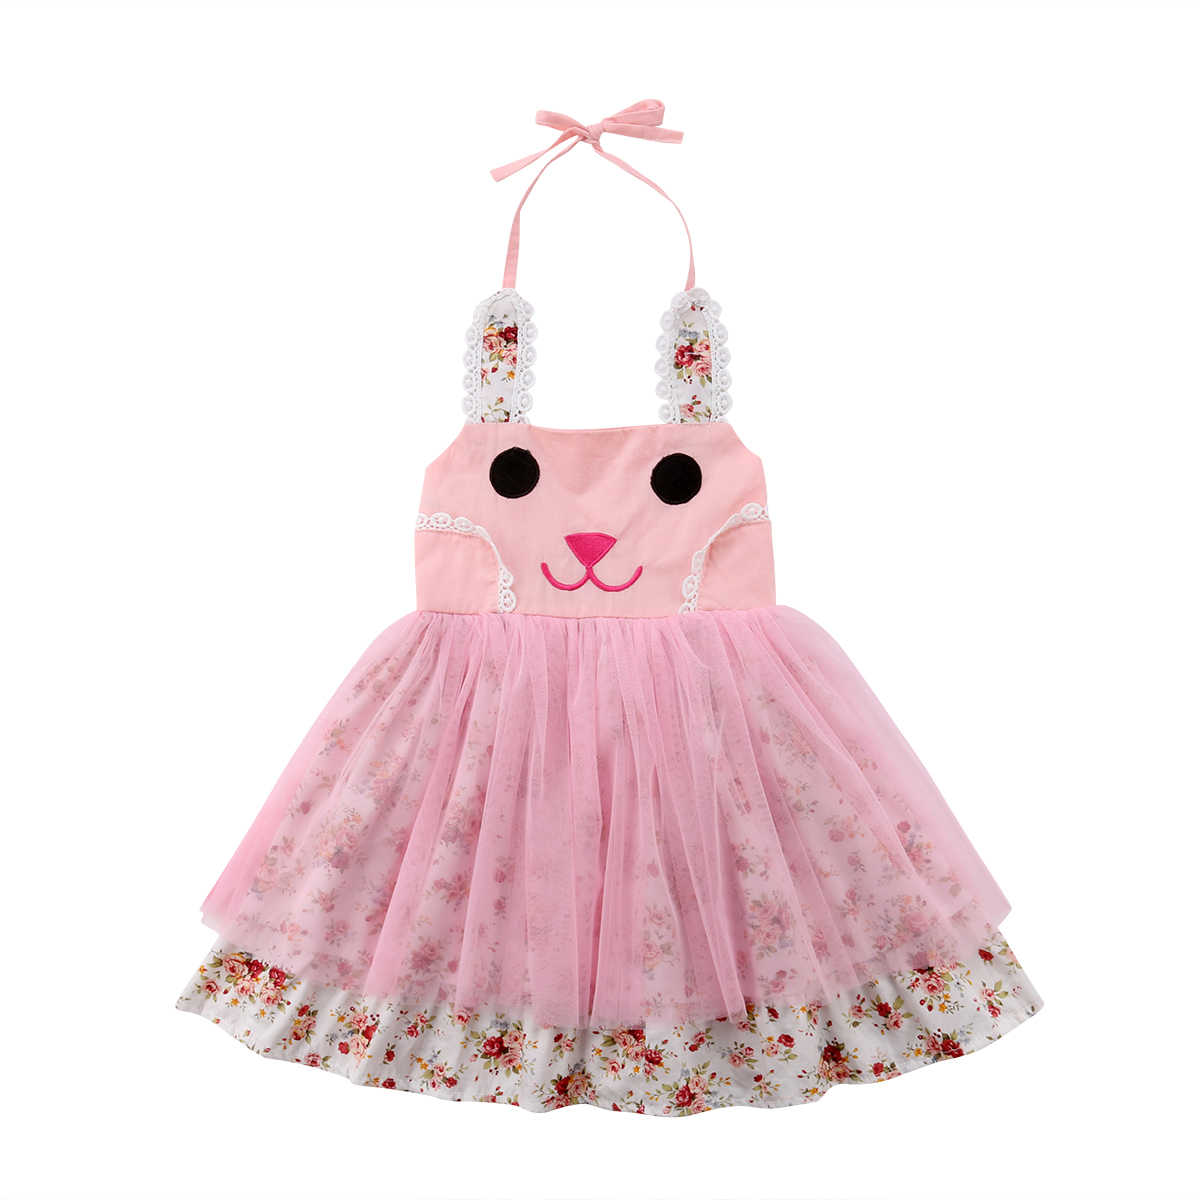 6507b0a55 ... US Toddler Baby Girl Easter Bunny Cartoon Dress Floral Princess Party  Outfit Set ...